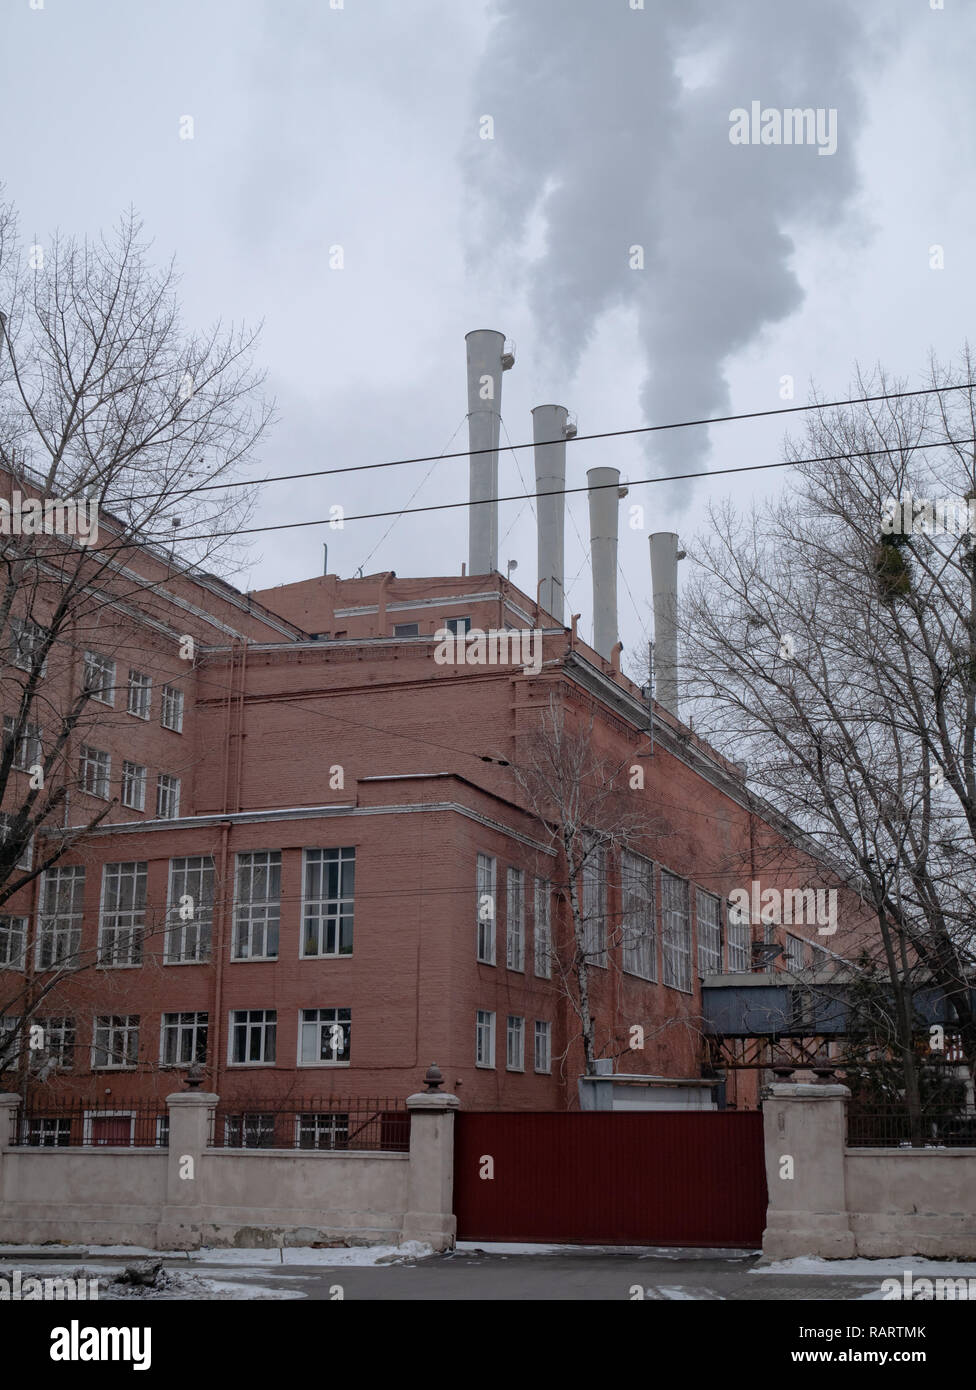 factory plant building with long chimneys producing some light industry goods - Stock Image